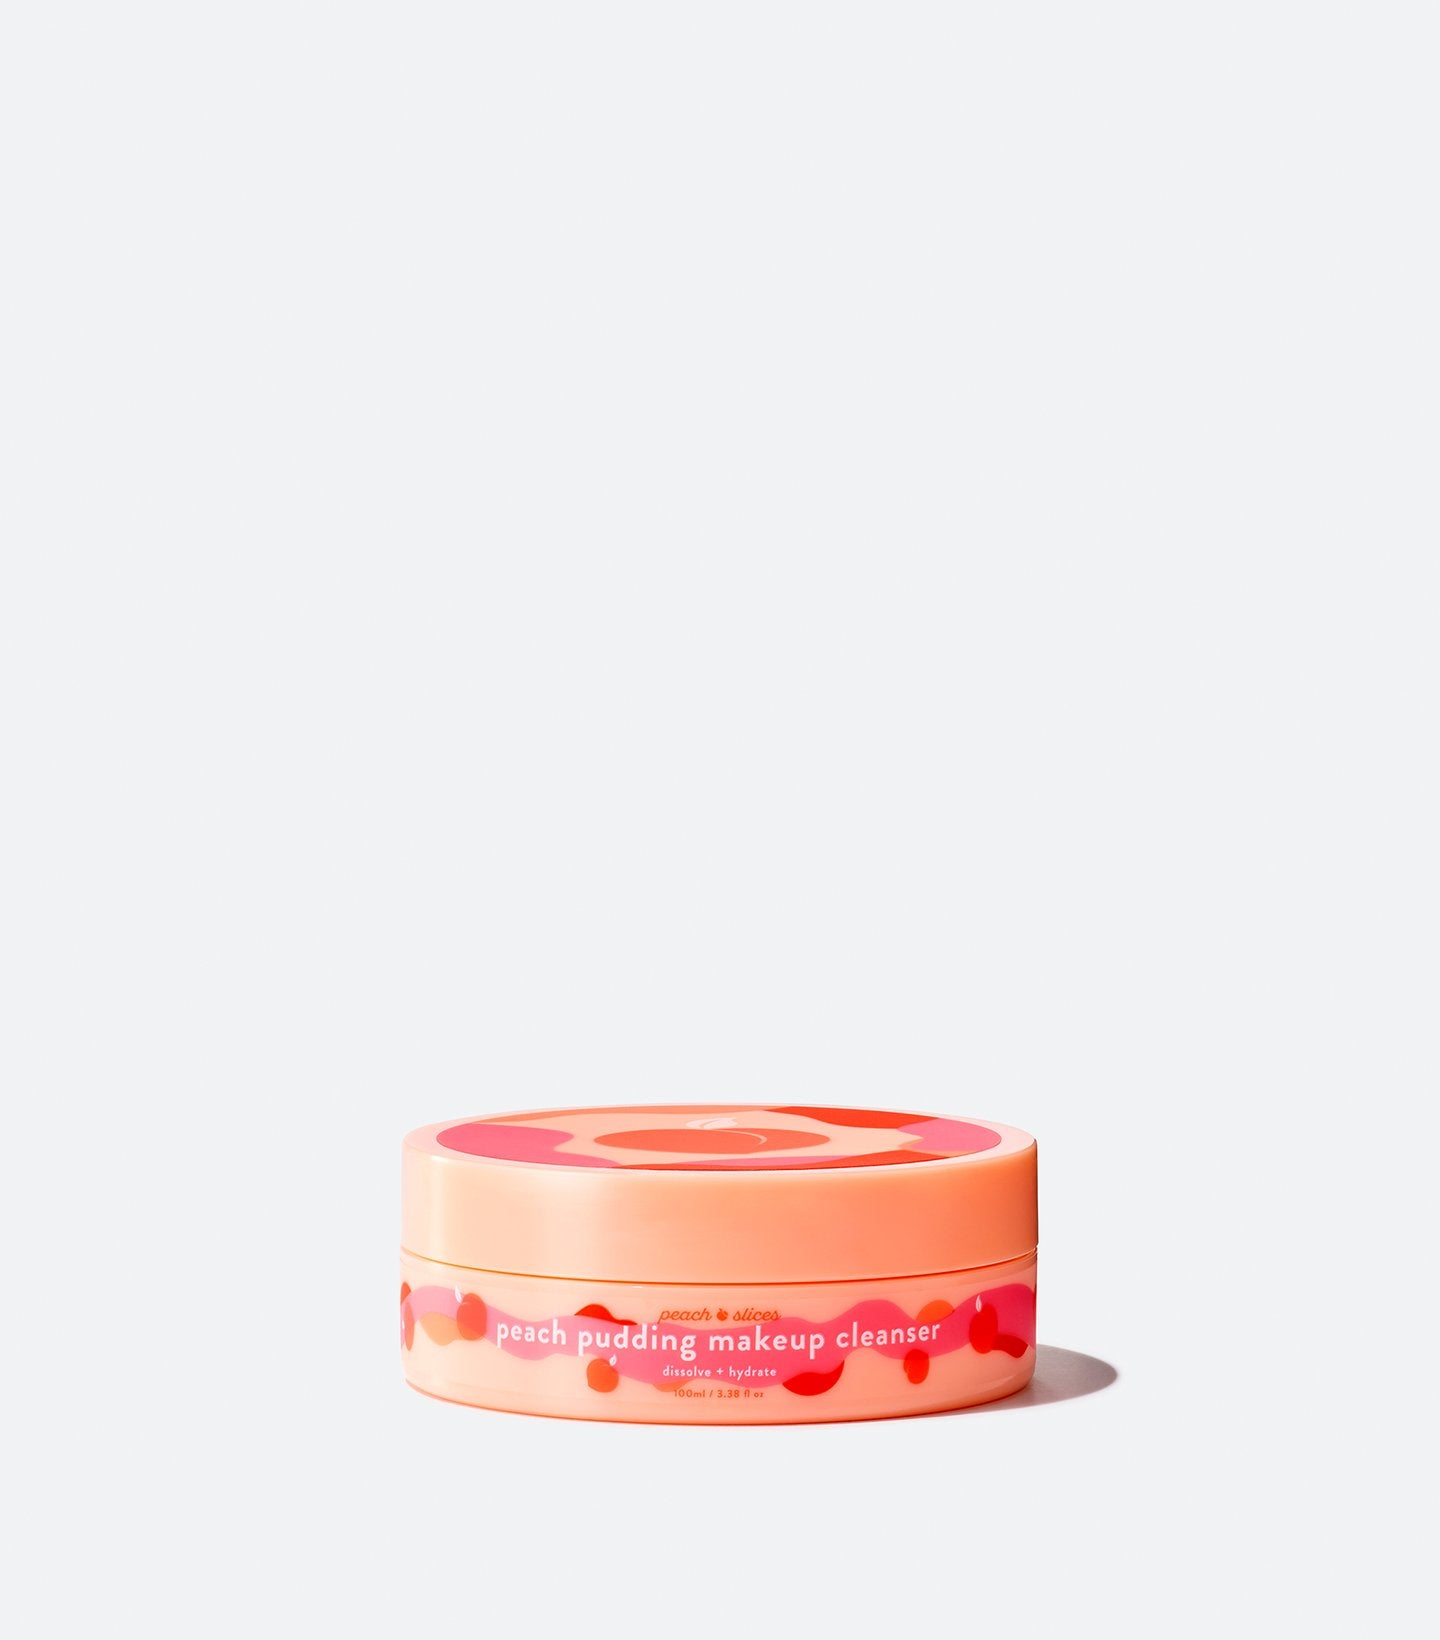 Peach Pudding Makeup Cleanser